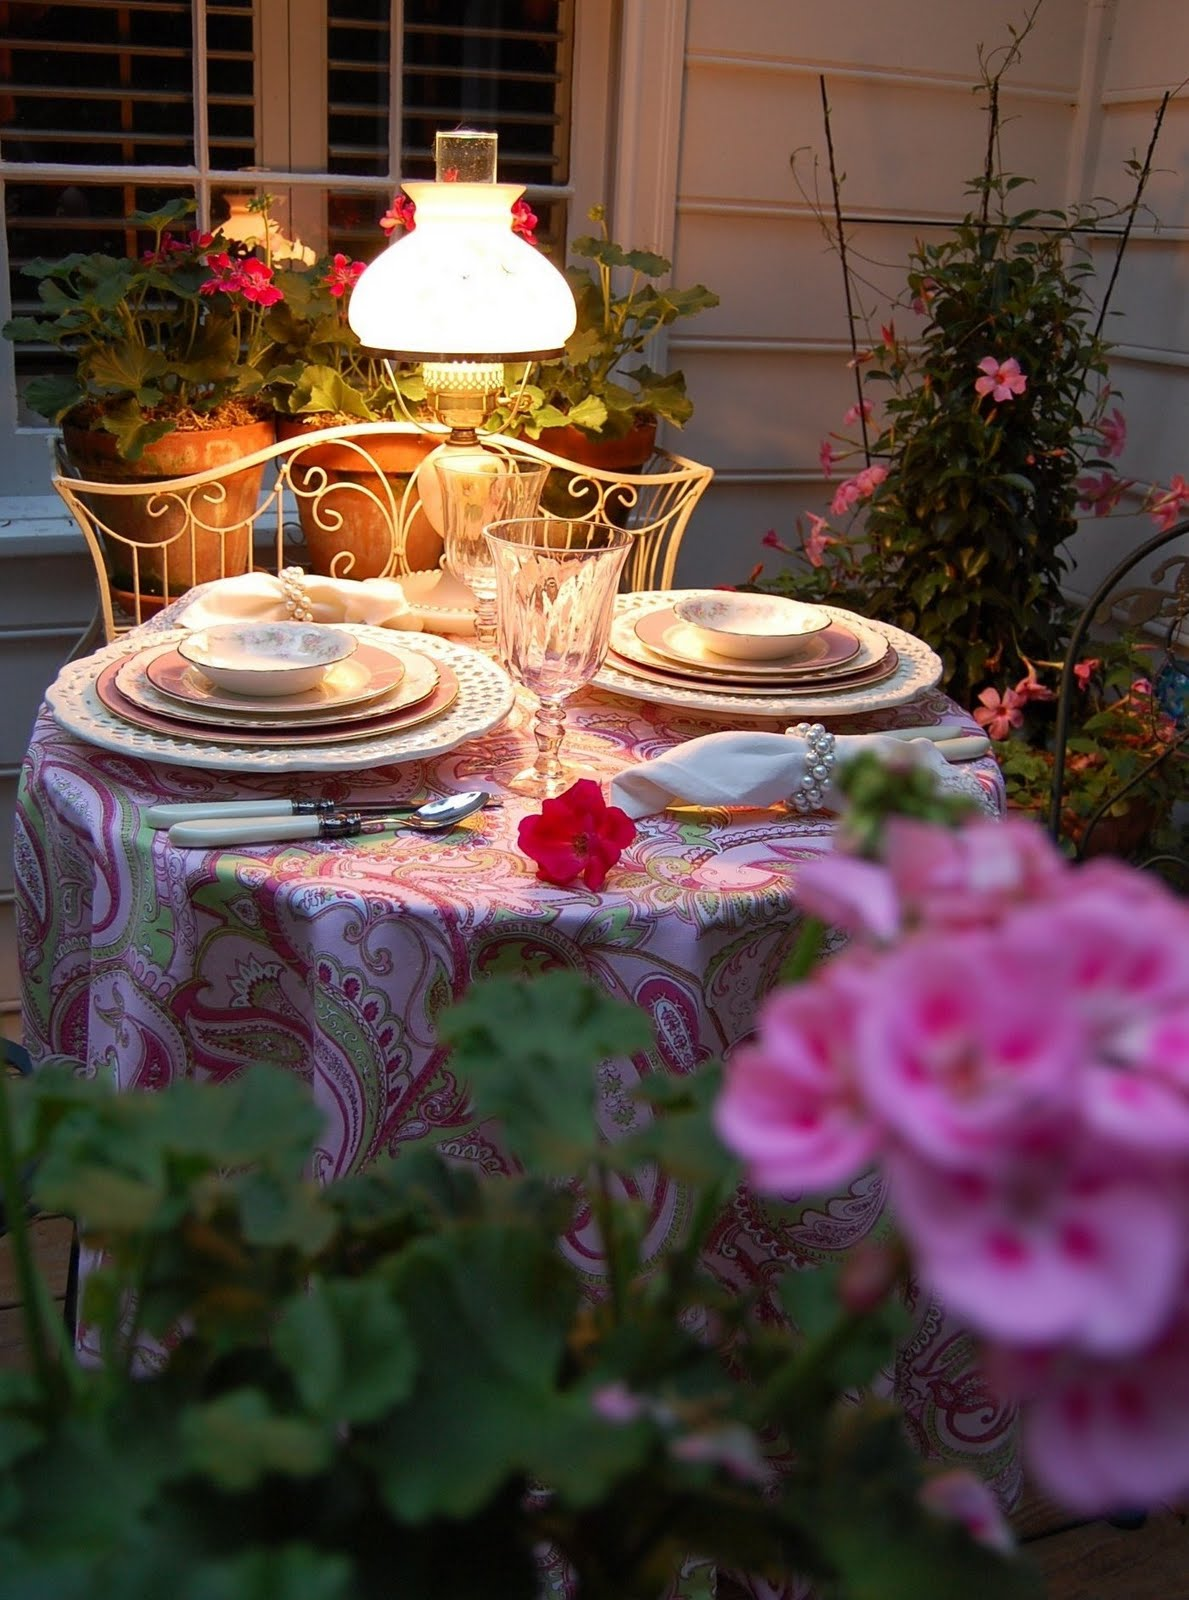 Table For 2 : Romantic table for two on the deck